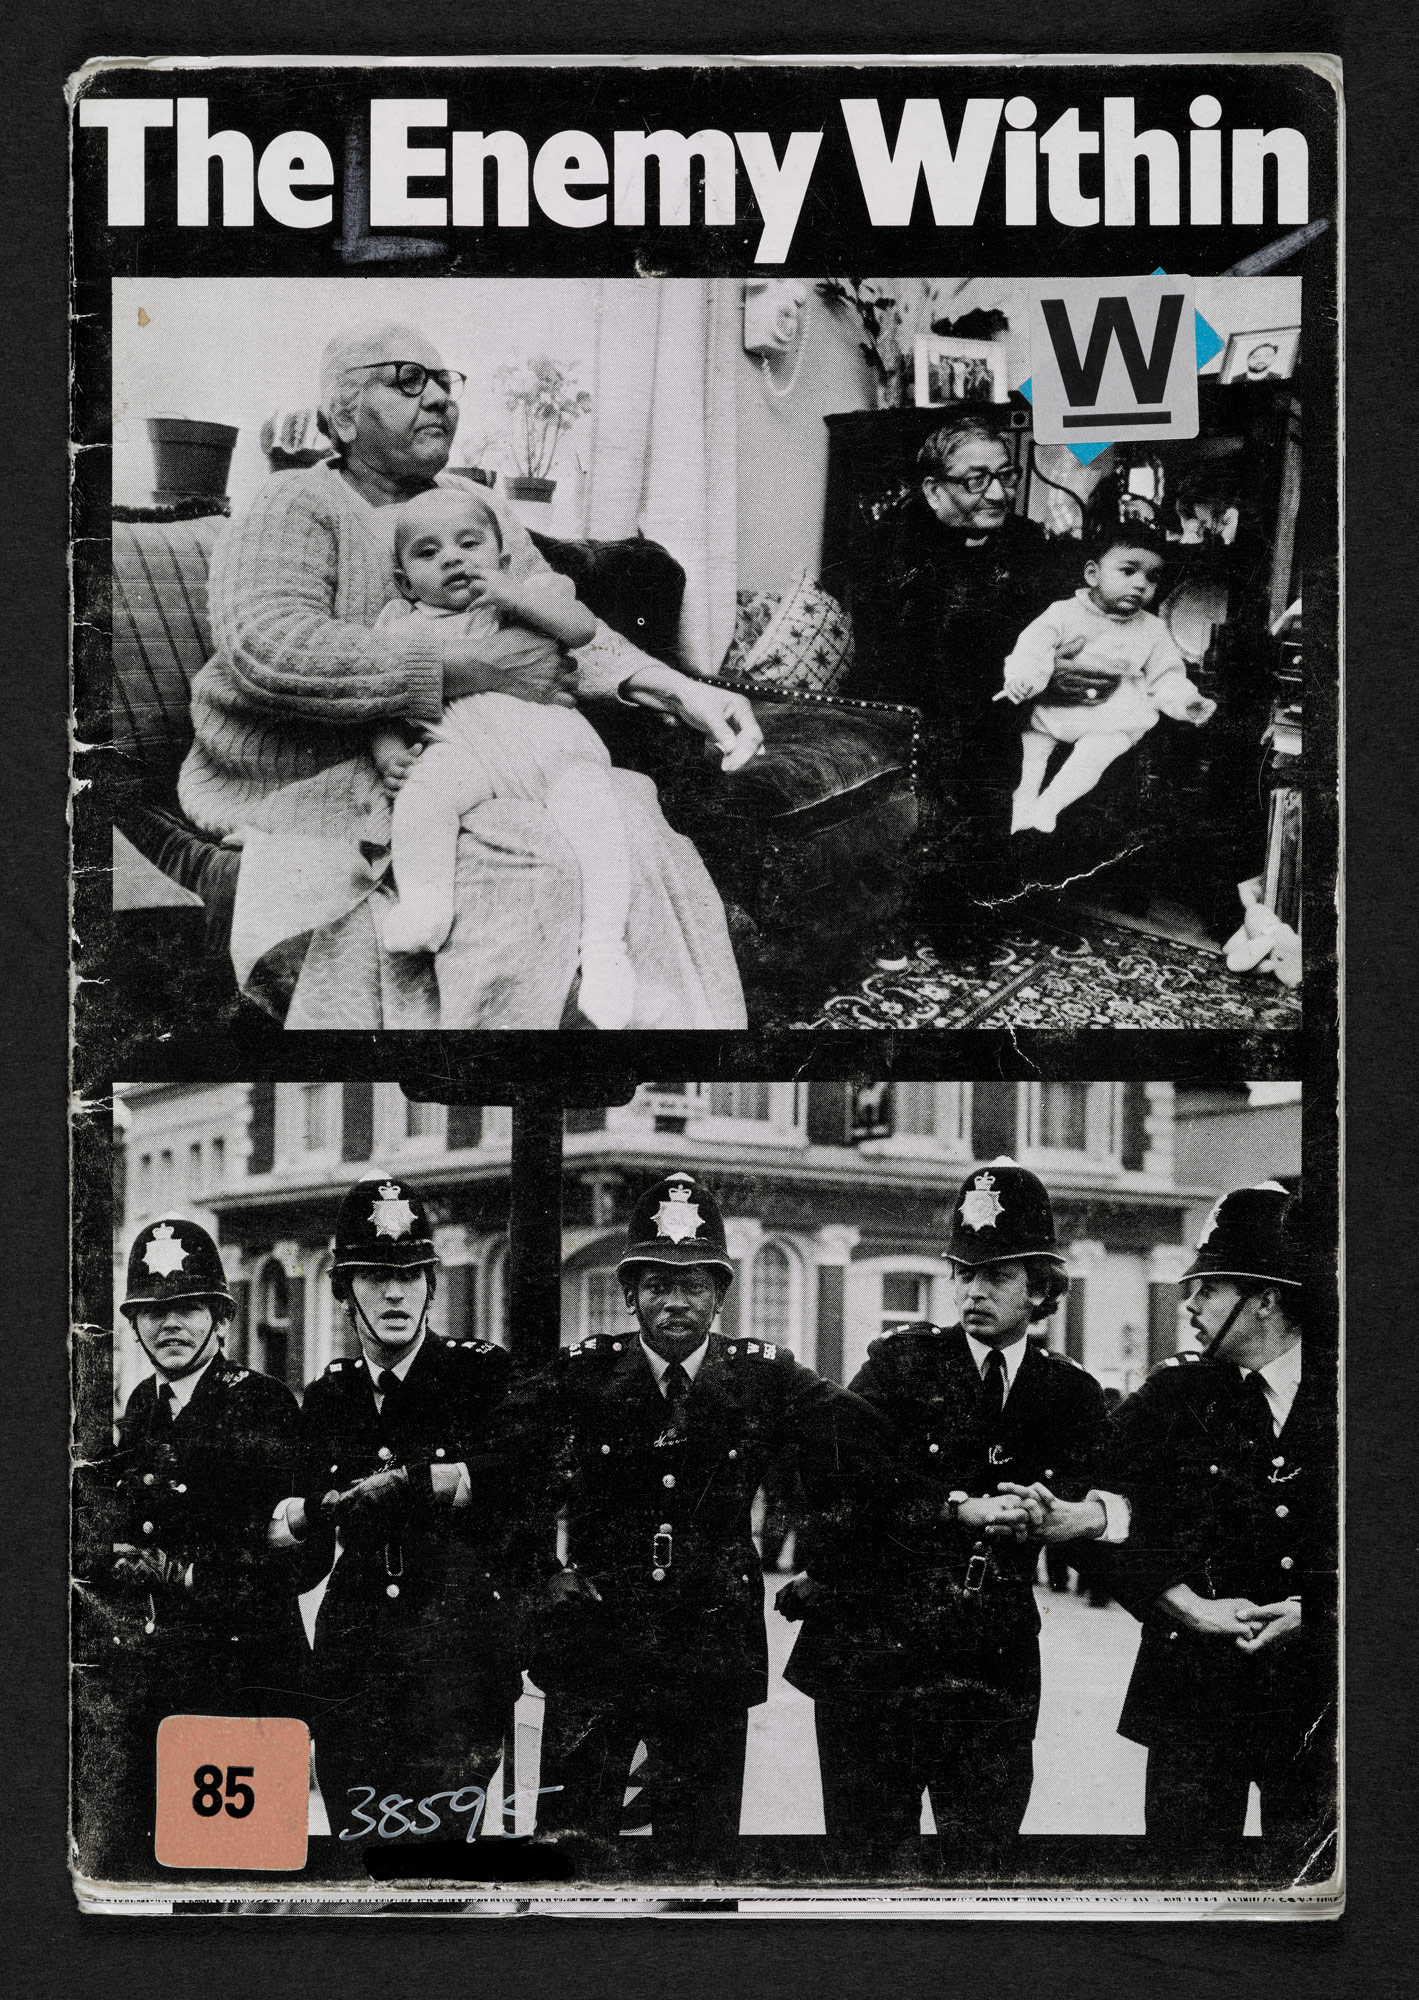 Front cover for The Enemy Within pamphlet, featuring one photograph of a South Asian family and one photograph of white police officers linking arms with a black police officer